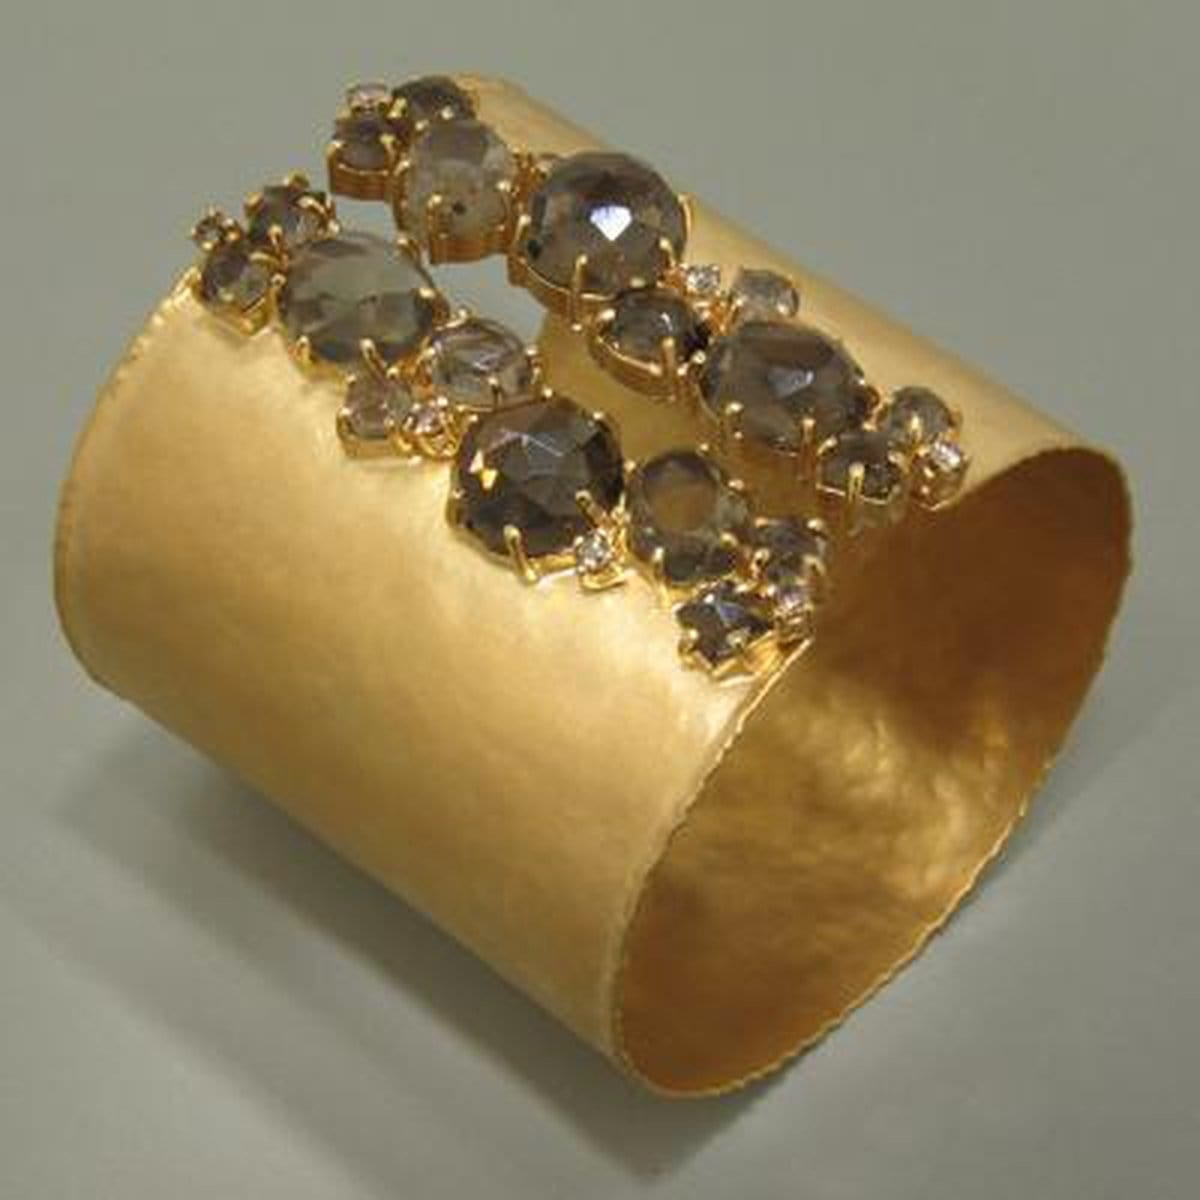 Marika Diamond, Smokey Quartz & Gold Cuff - M2854-Marika-Renee Taylor Gallery